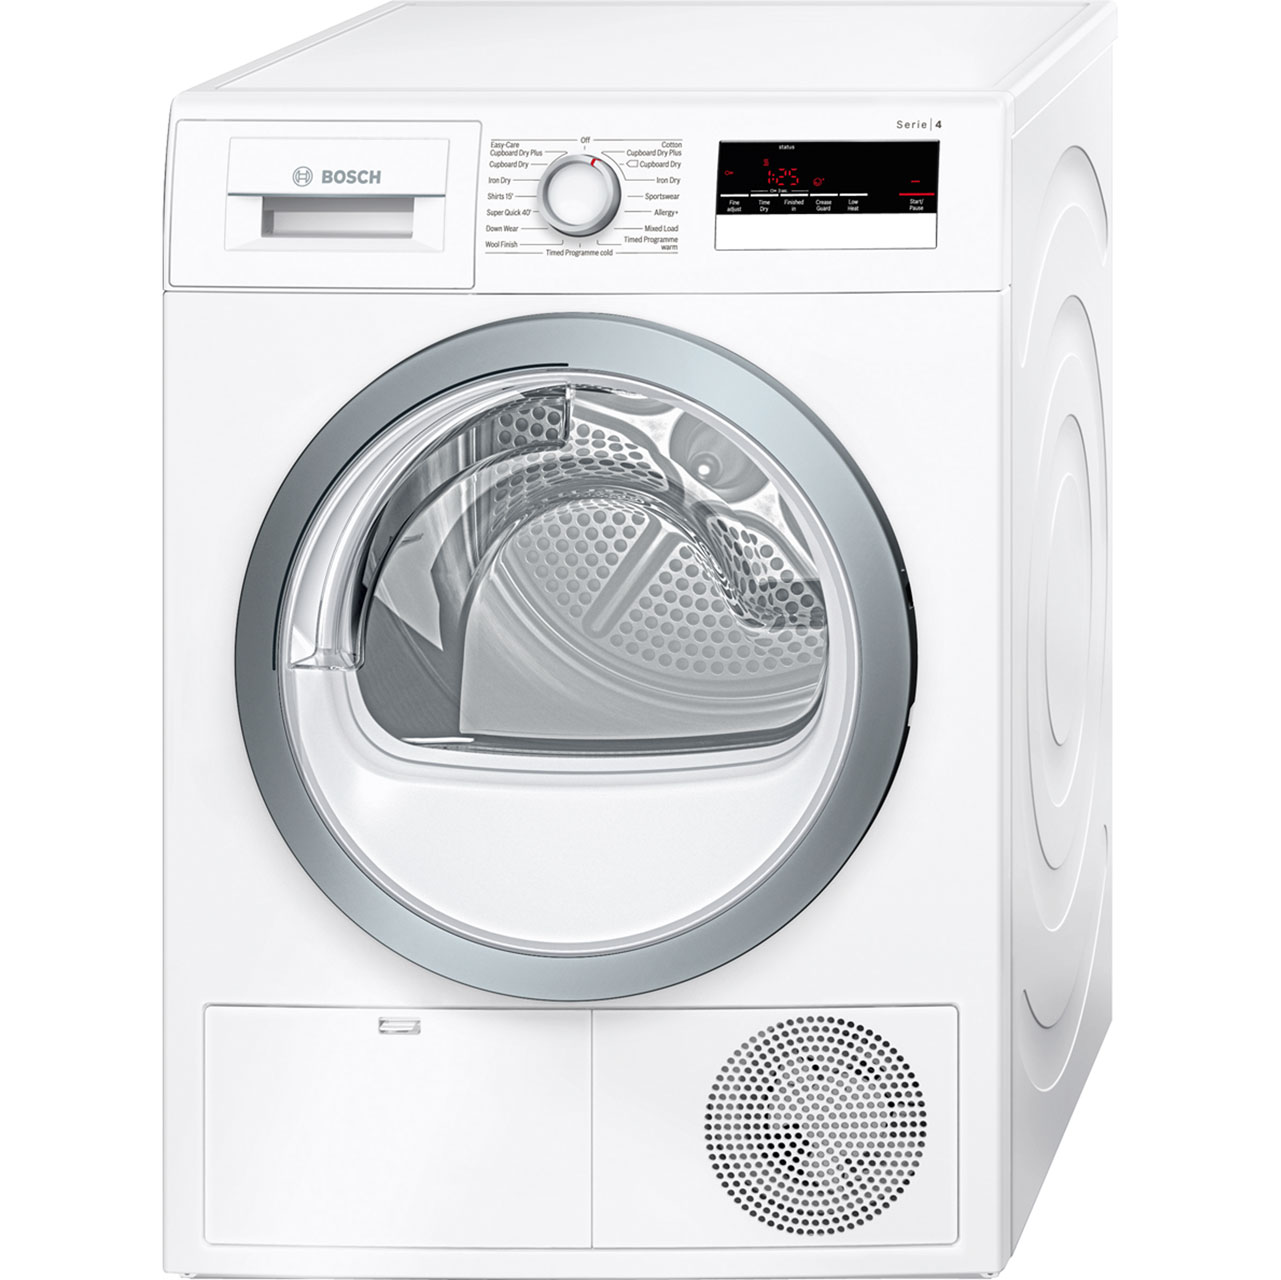 bosch serie 4 wtn85250gb 8kg condenser tumble dryer white 99496 ebay. Black Bedroom Furniture Sets. Home Design Ideas